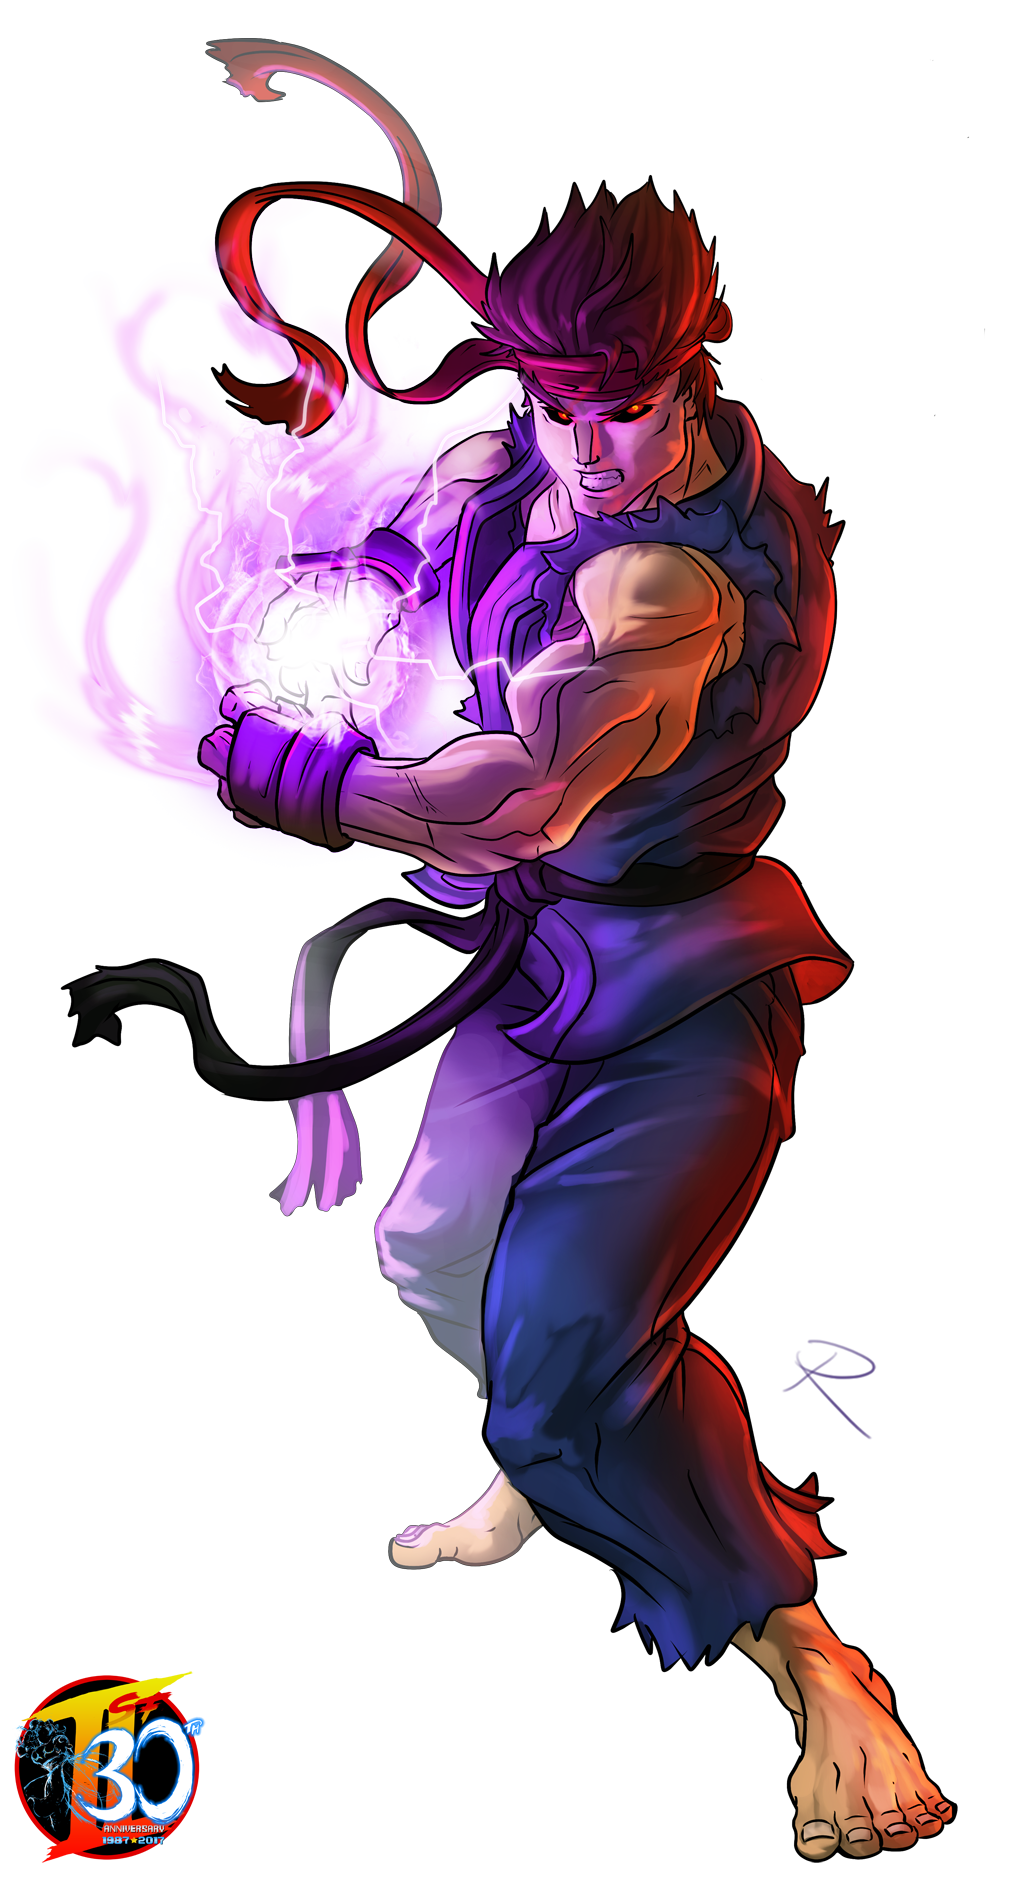 Ryu street fighter 2 png. Our th tribute evil